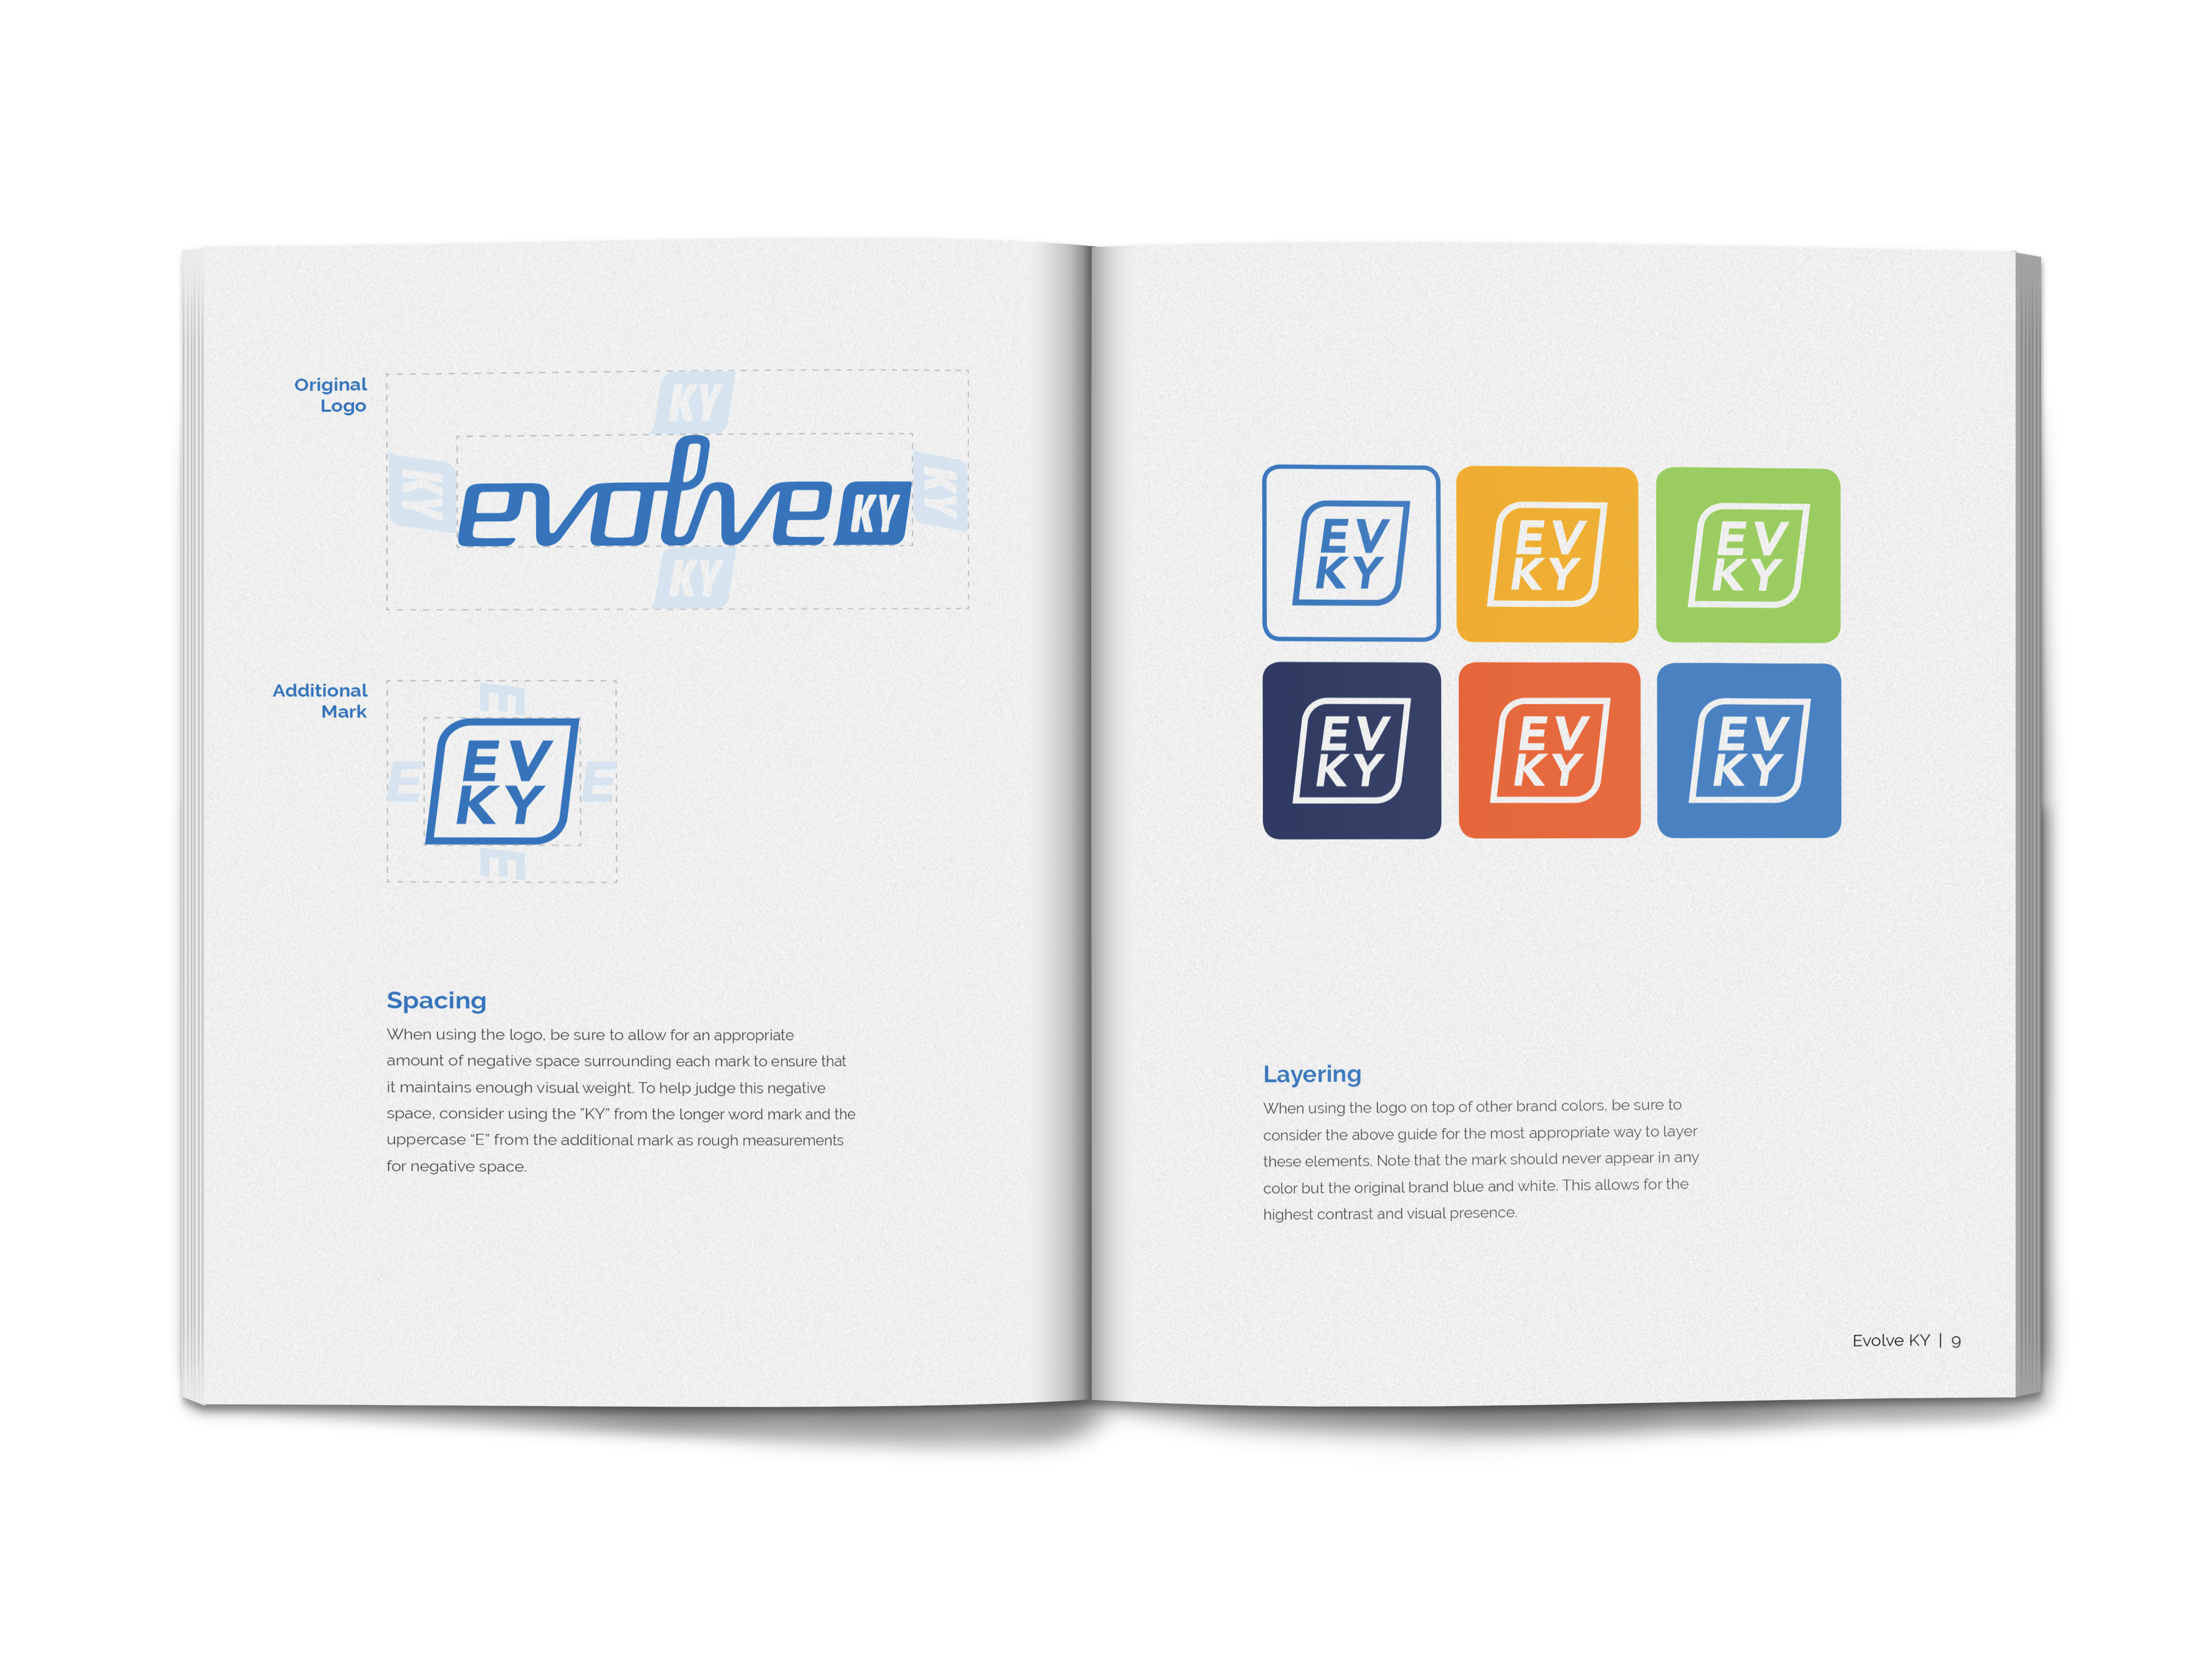 mockup of Evolve KY's brand standards guide showing the new secondary logo mark